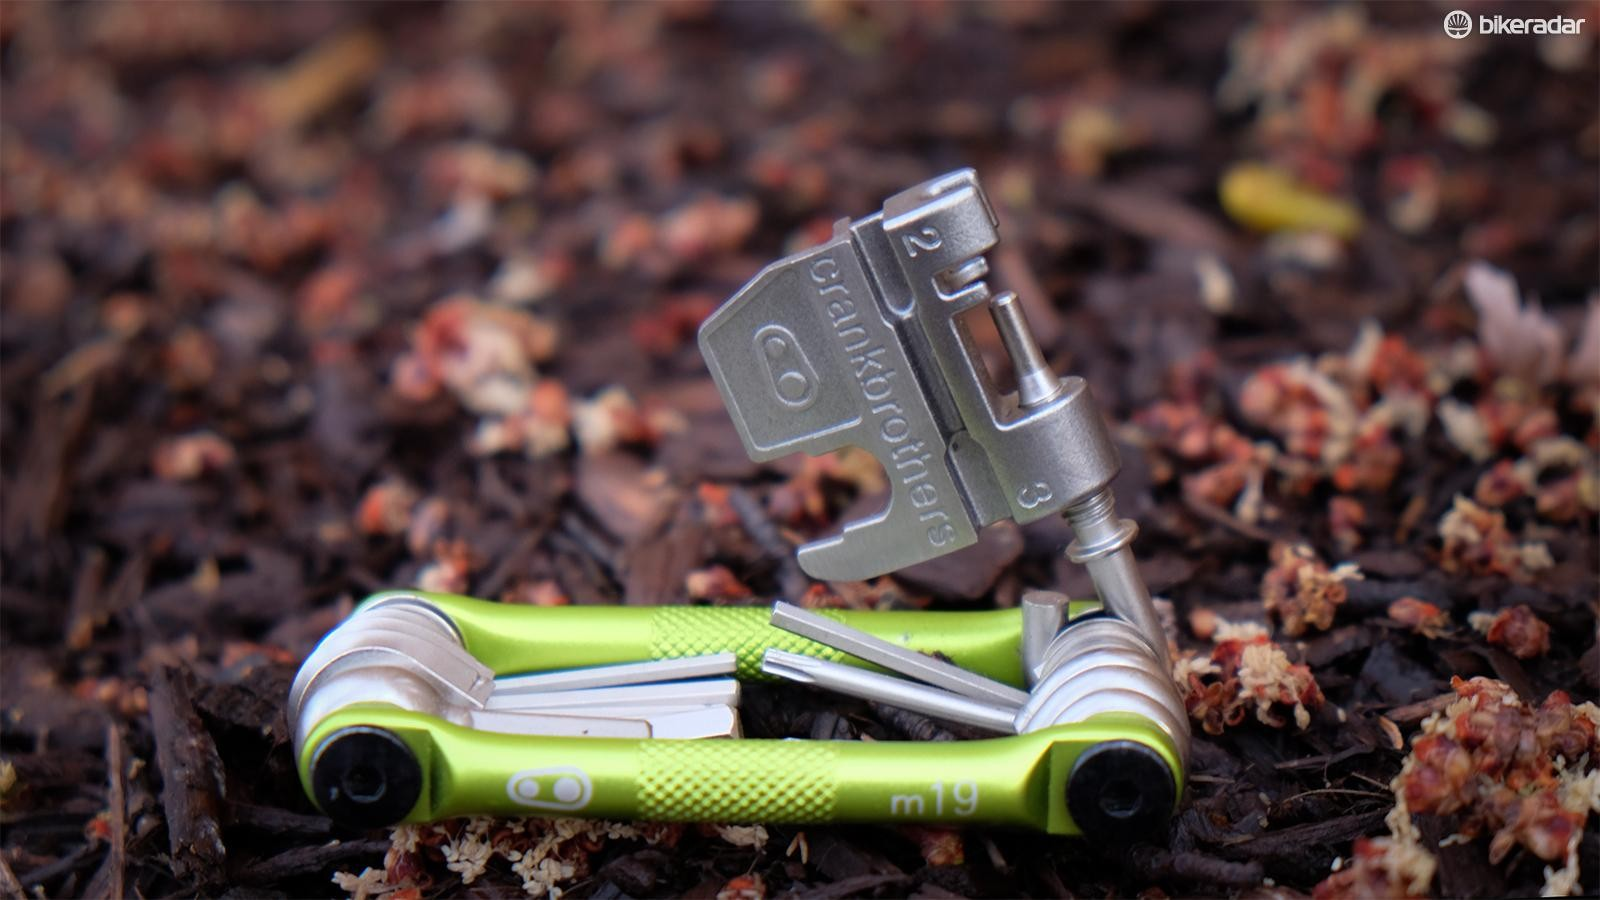 Never leave home without a good multi-tool, preferably one with a built-in chain tool